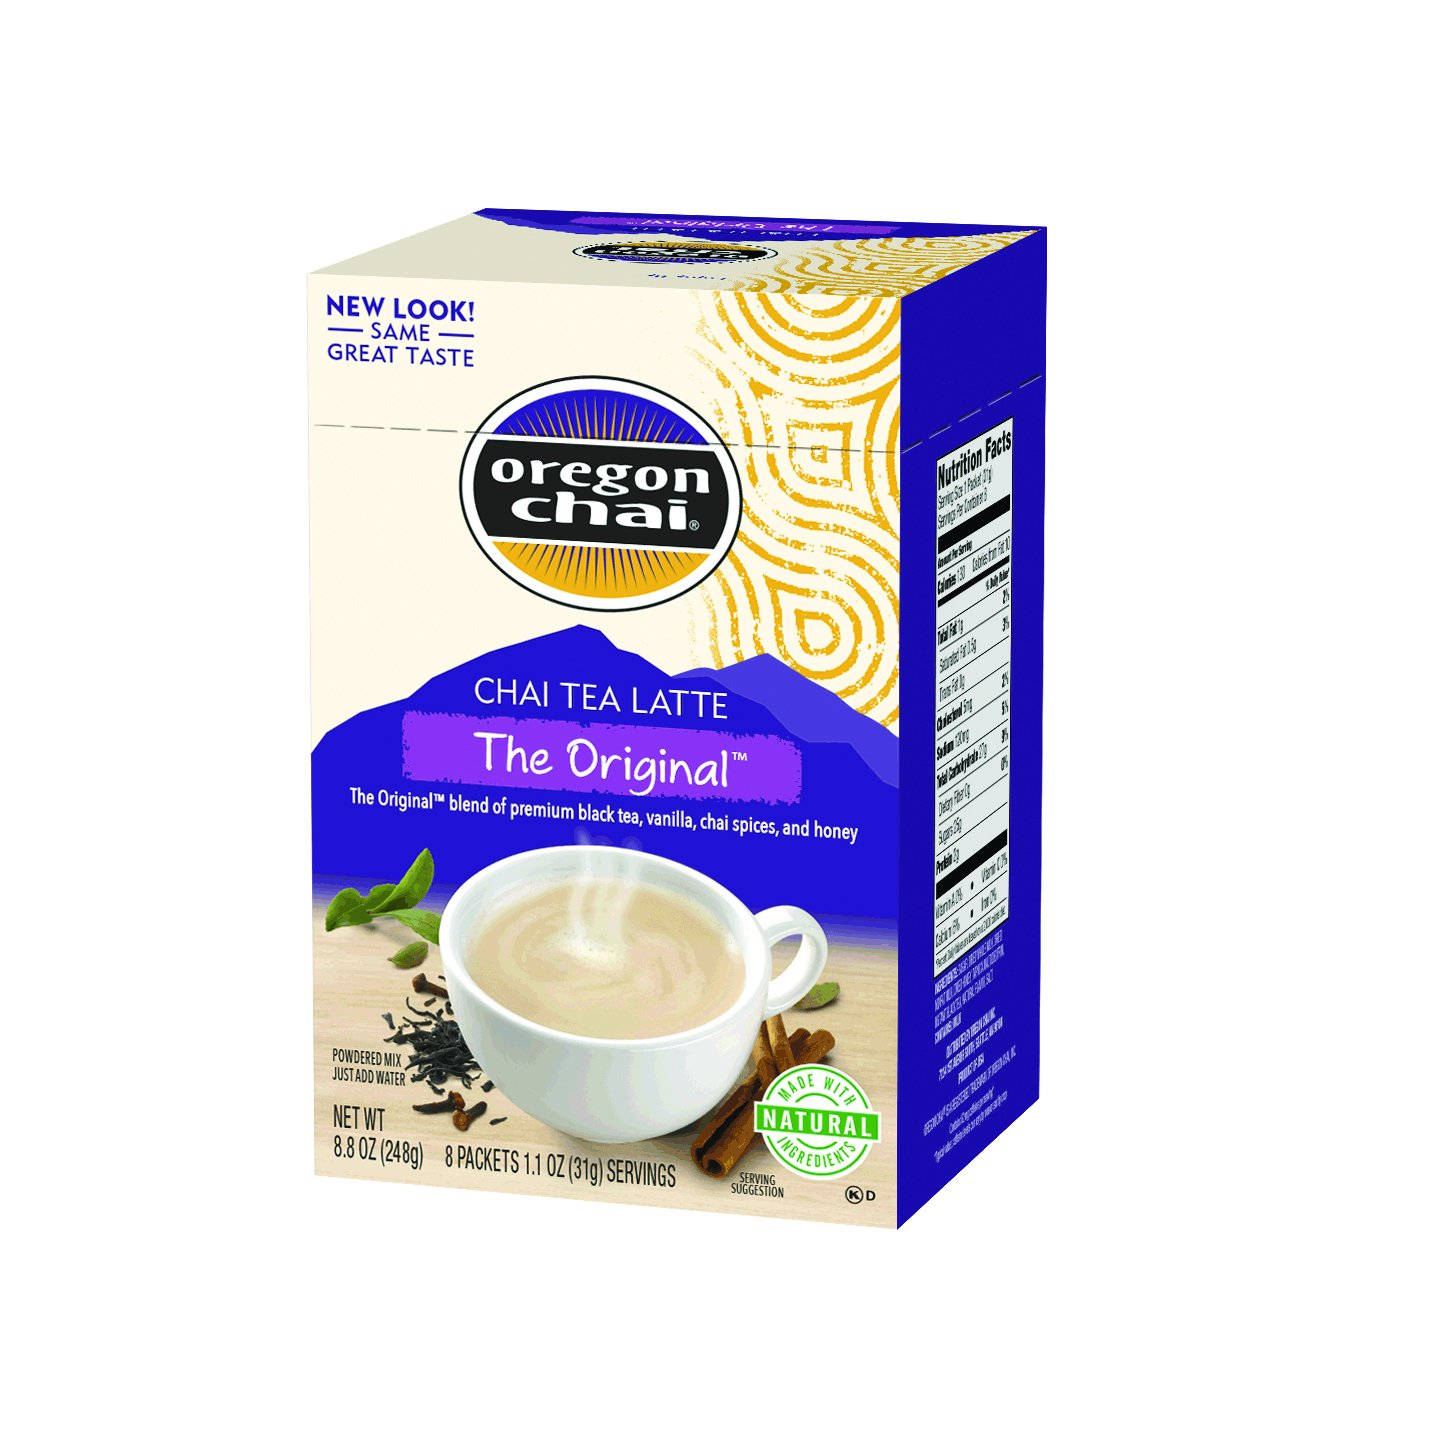 (Pack of 6), Powdered Spiced Black Tea Latte Mix For Home Use, Café, Food Service